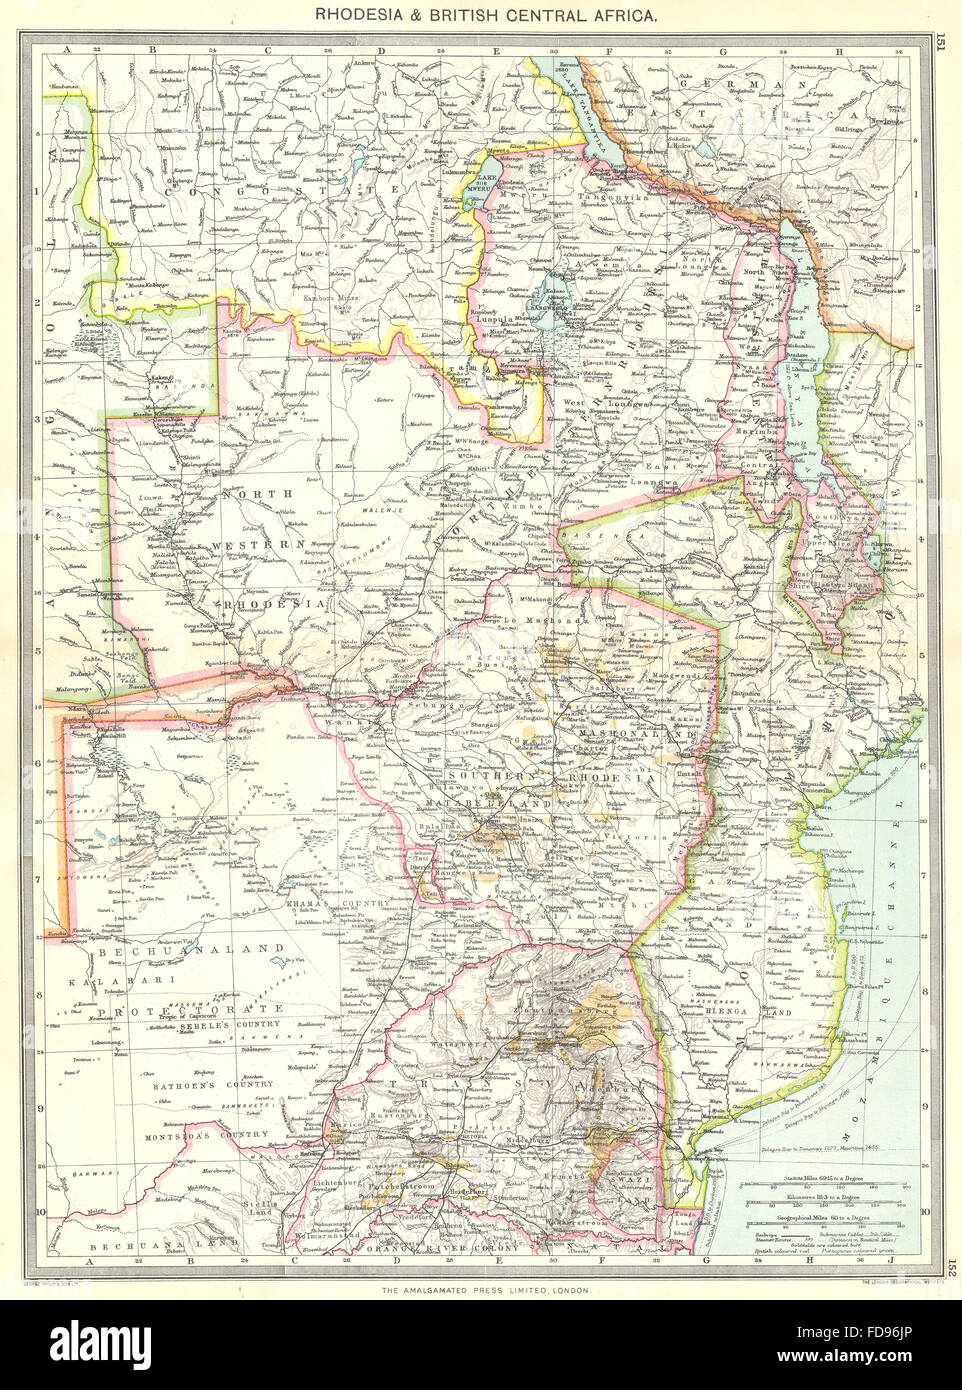 ZIMBABWE: Rhodesia and British Central Africa, 1907 antique map - Stock Image